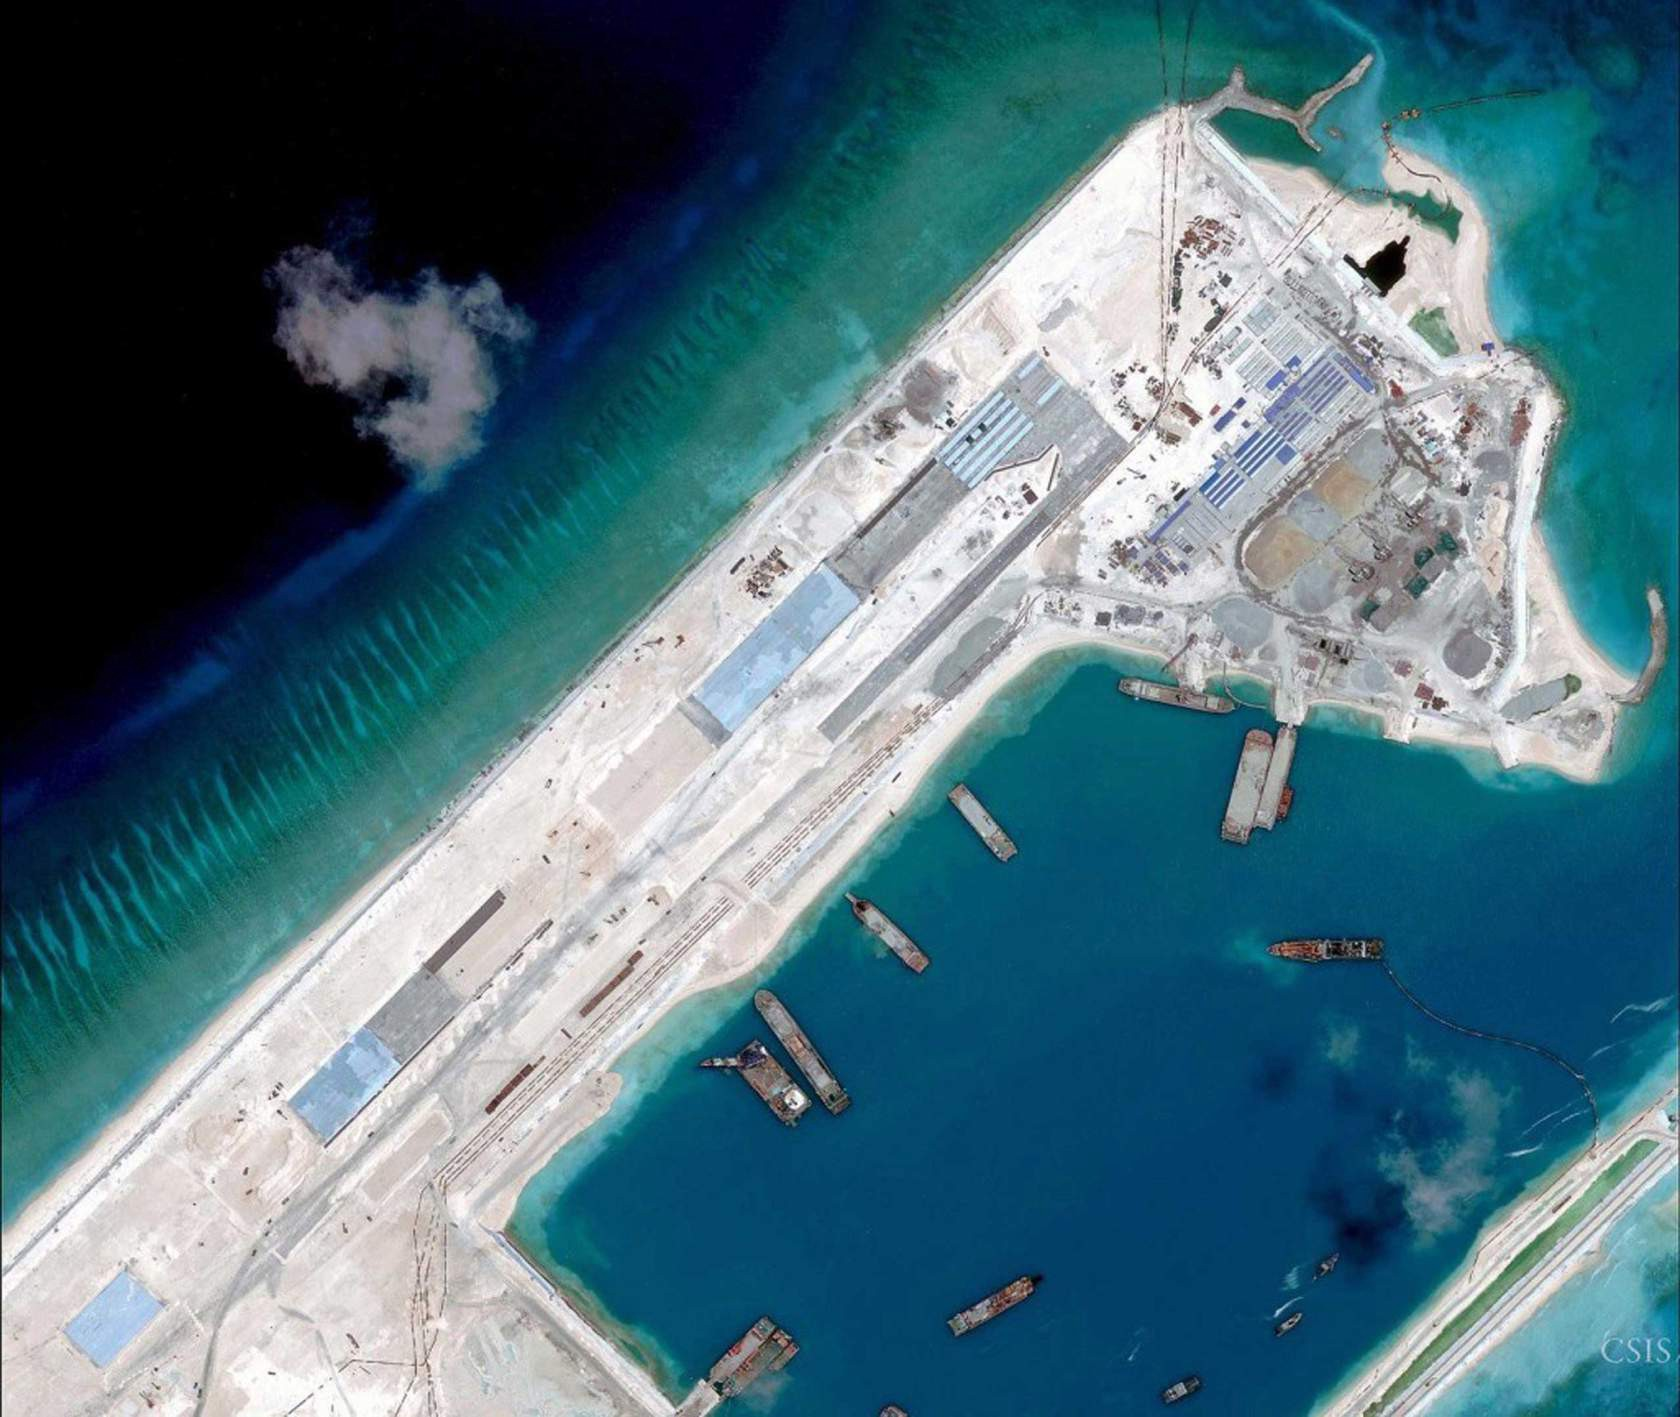 Airstrip on the Fiery Cross Reef in the South China Sea on April 2, 2015. CSIS Asia Maritime Transparency Initiative/DigitalGlobe photo